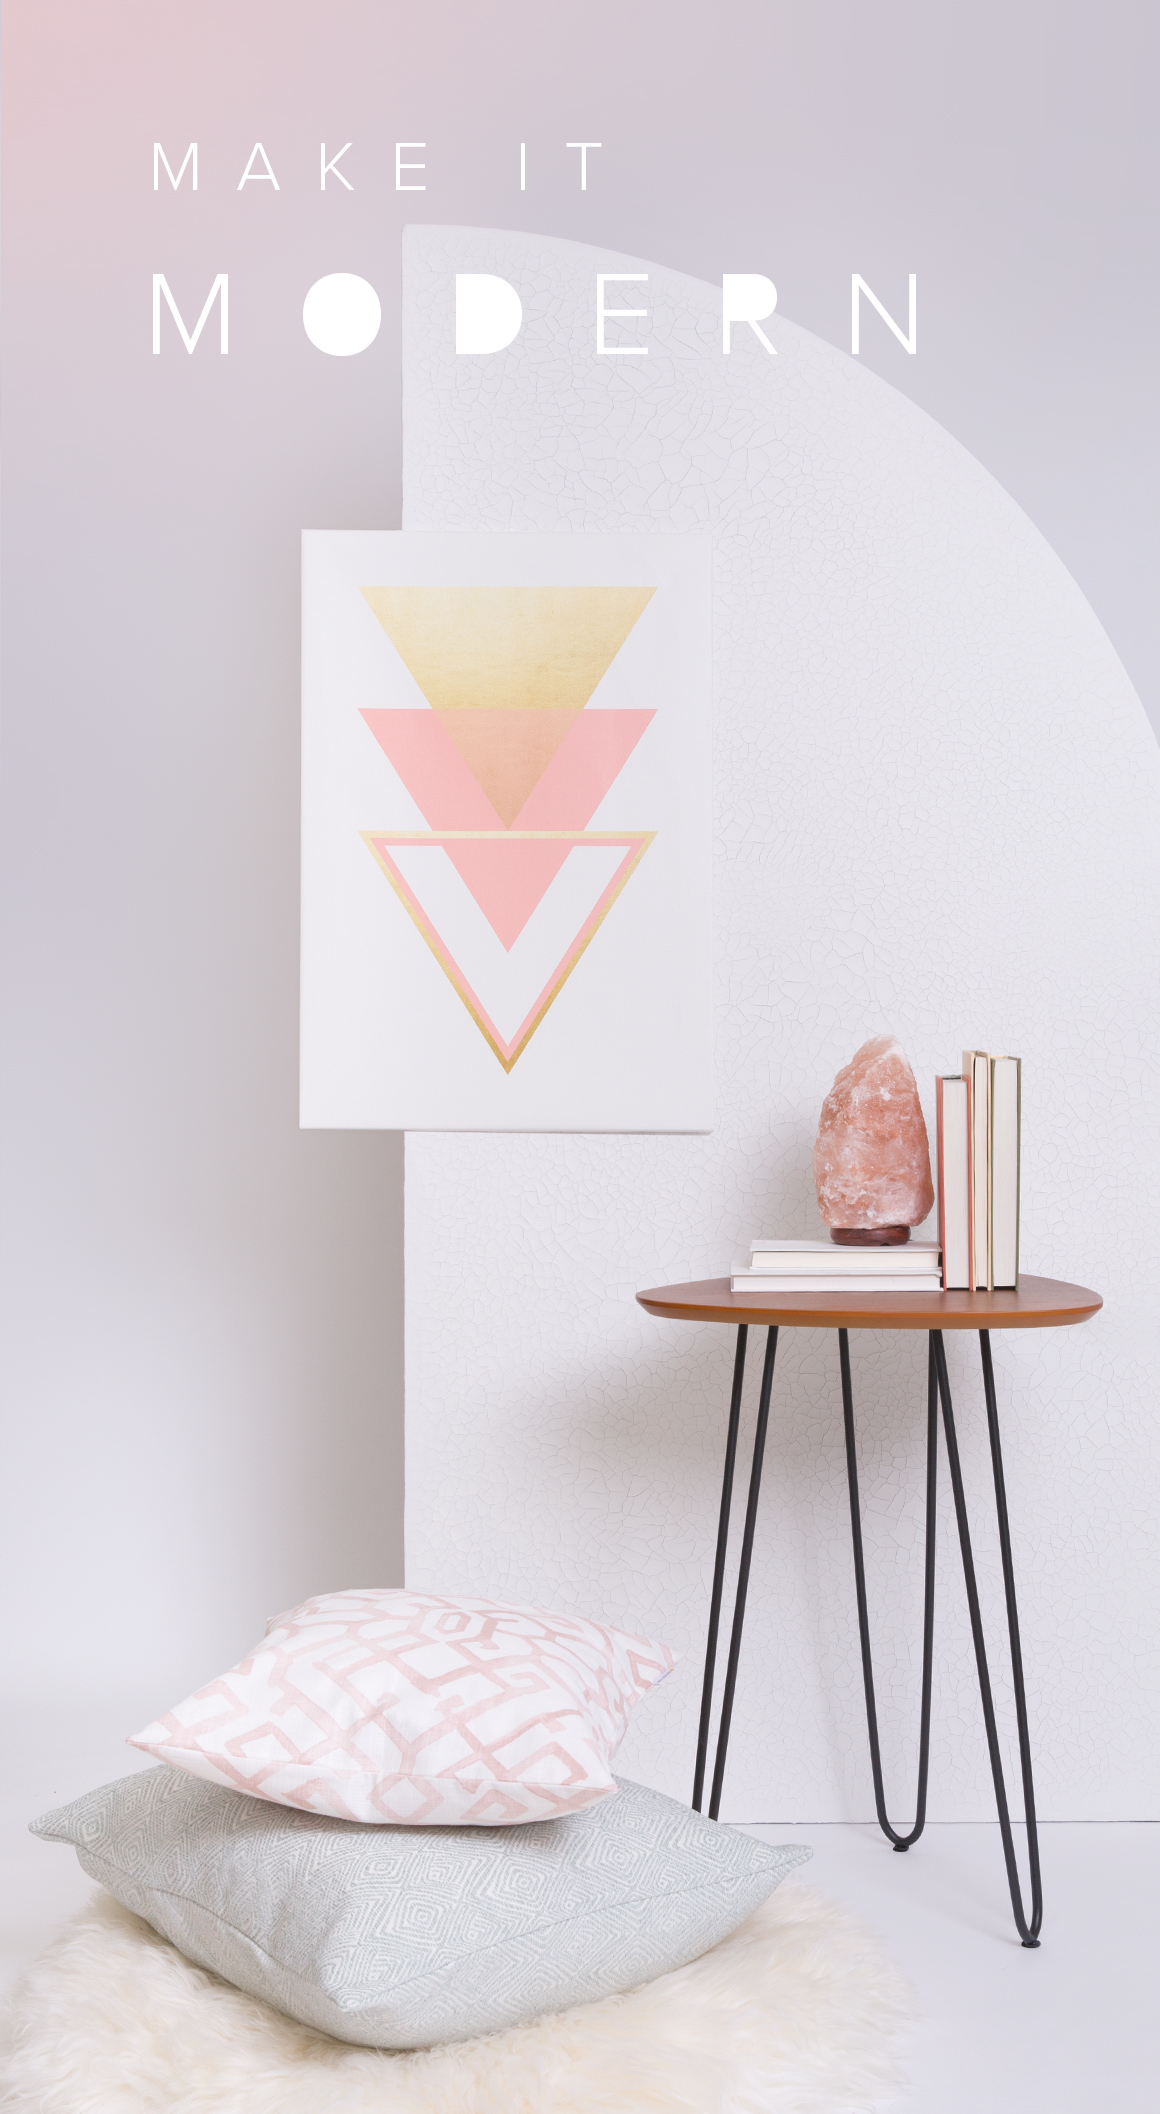 Give Your Room A Retro Modern Refresh With These Sleek Shapes,